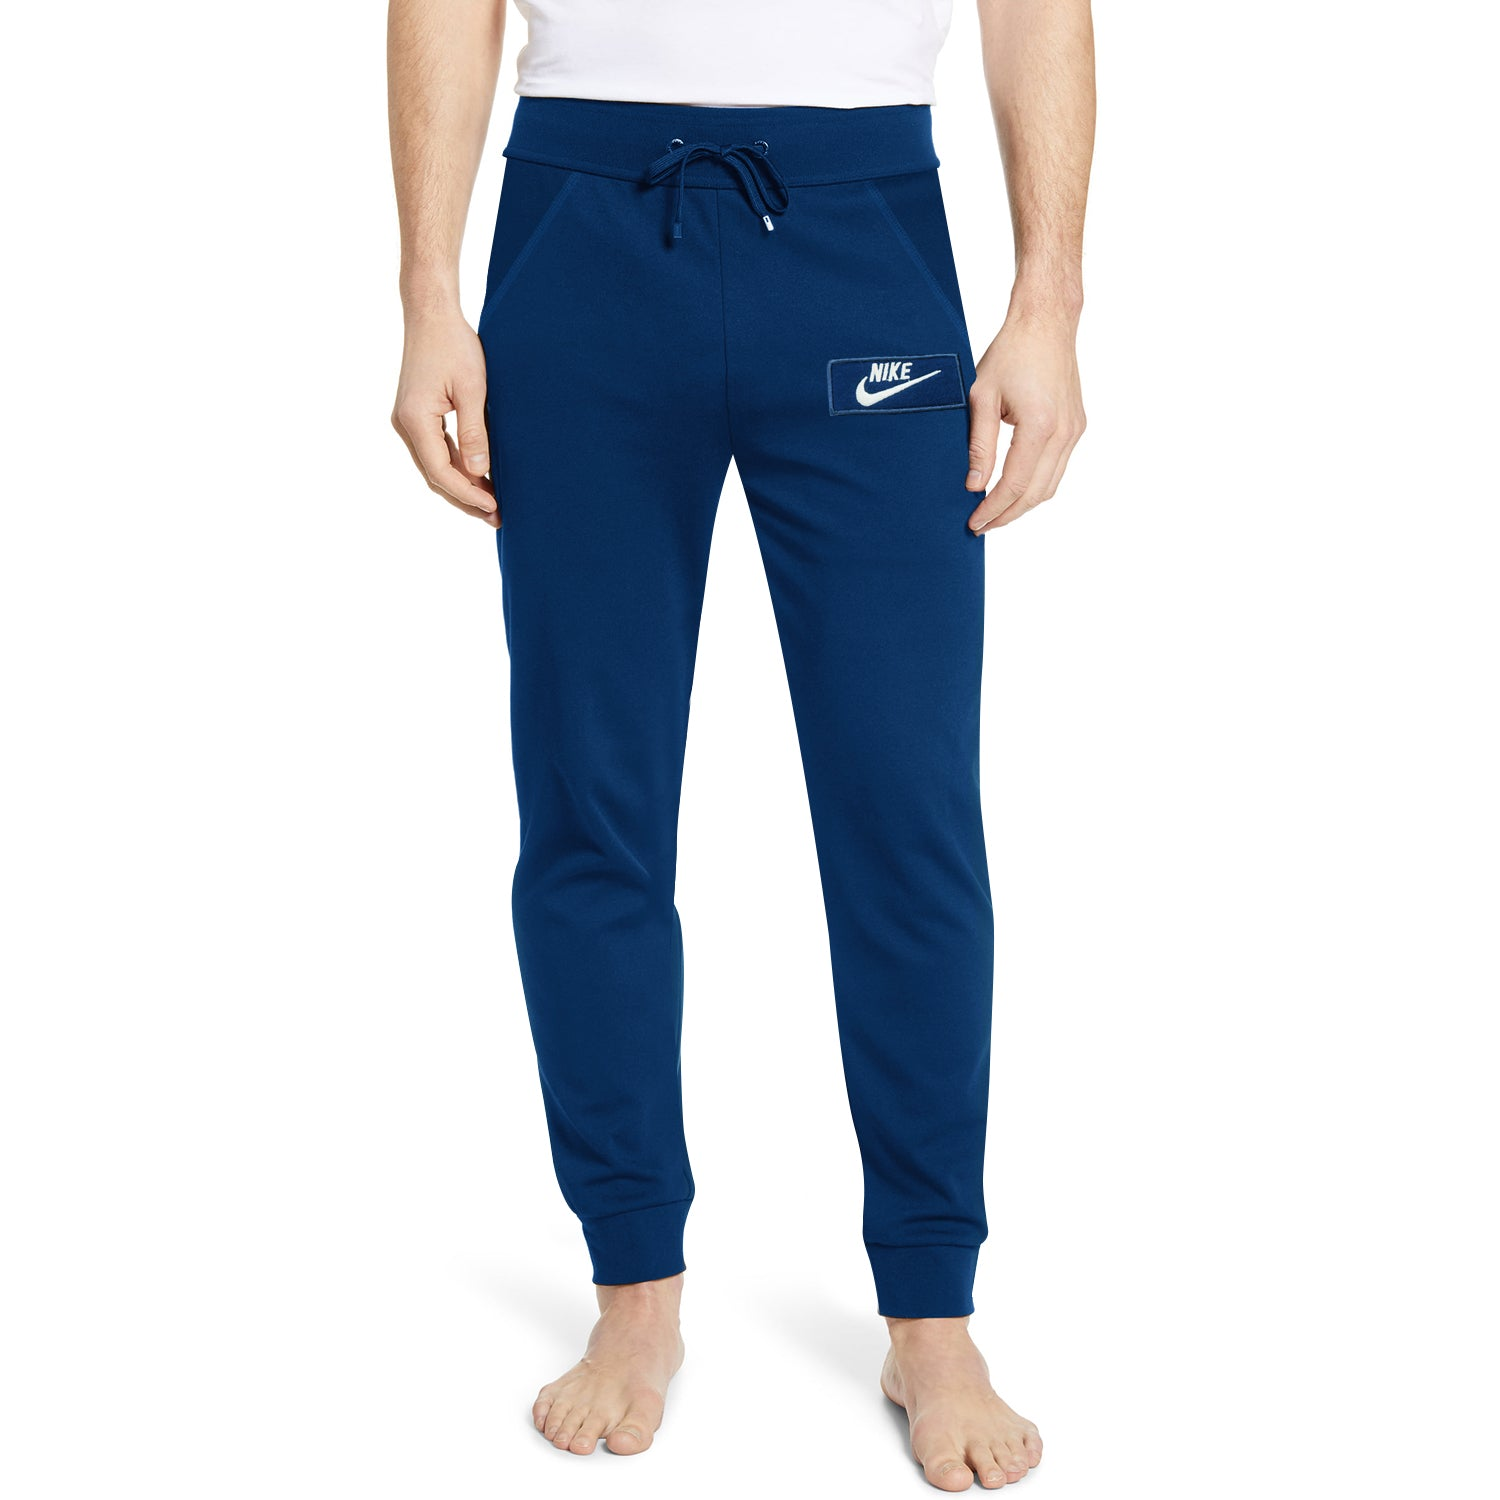 NK Fleece Slim Fit Pant Style Jogging Trouser For Men-Dark Blue with White Embroidery-BE12893